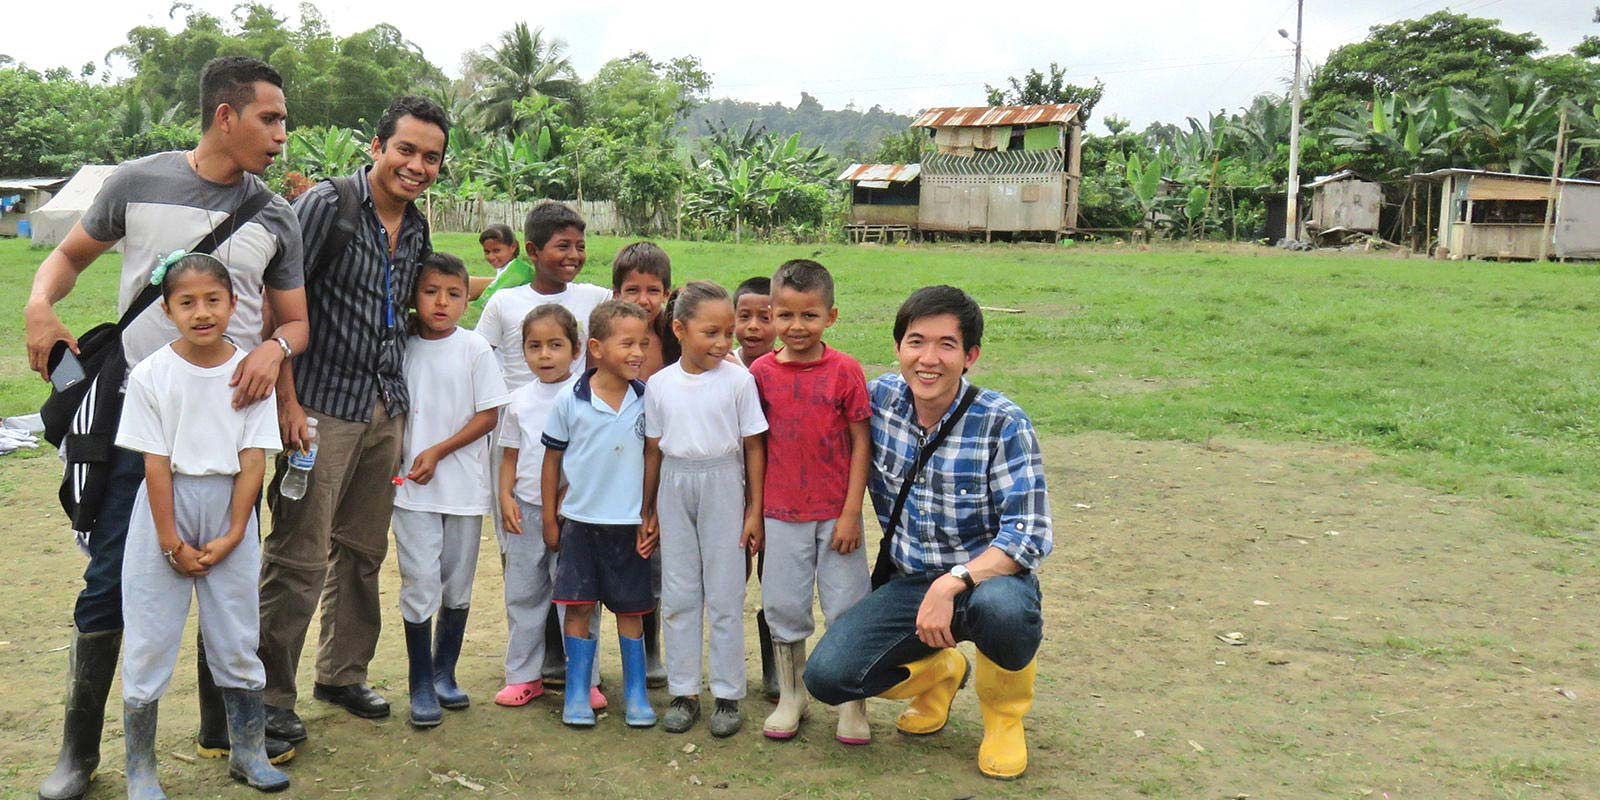 Khanh Ha Muisne with local resident children in Ecuador